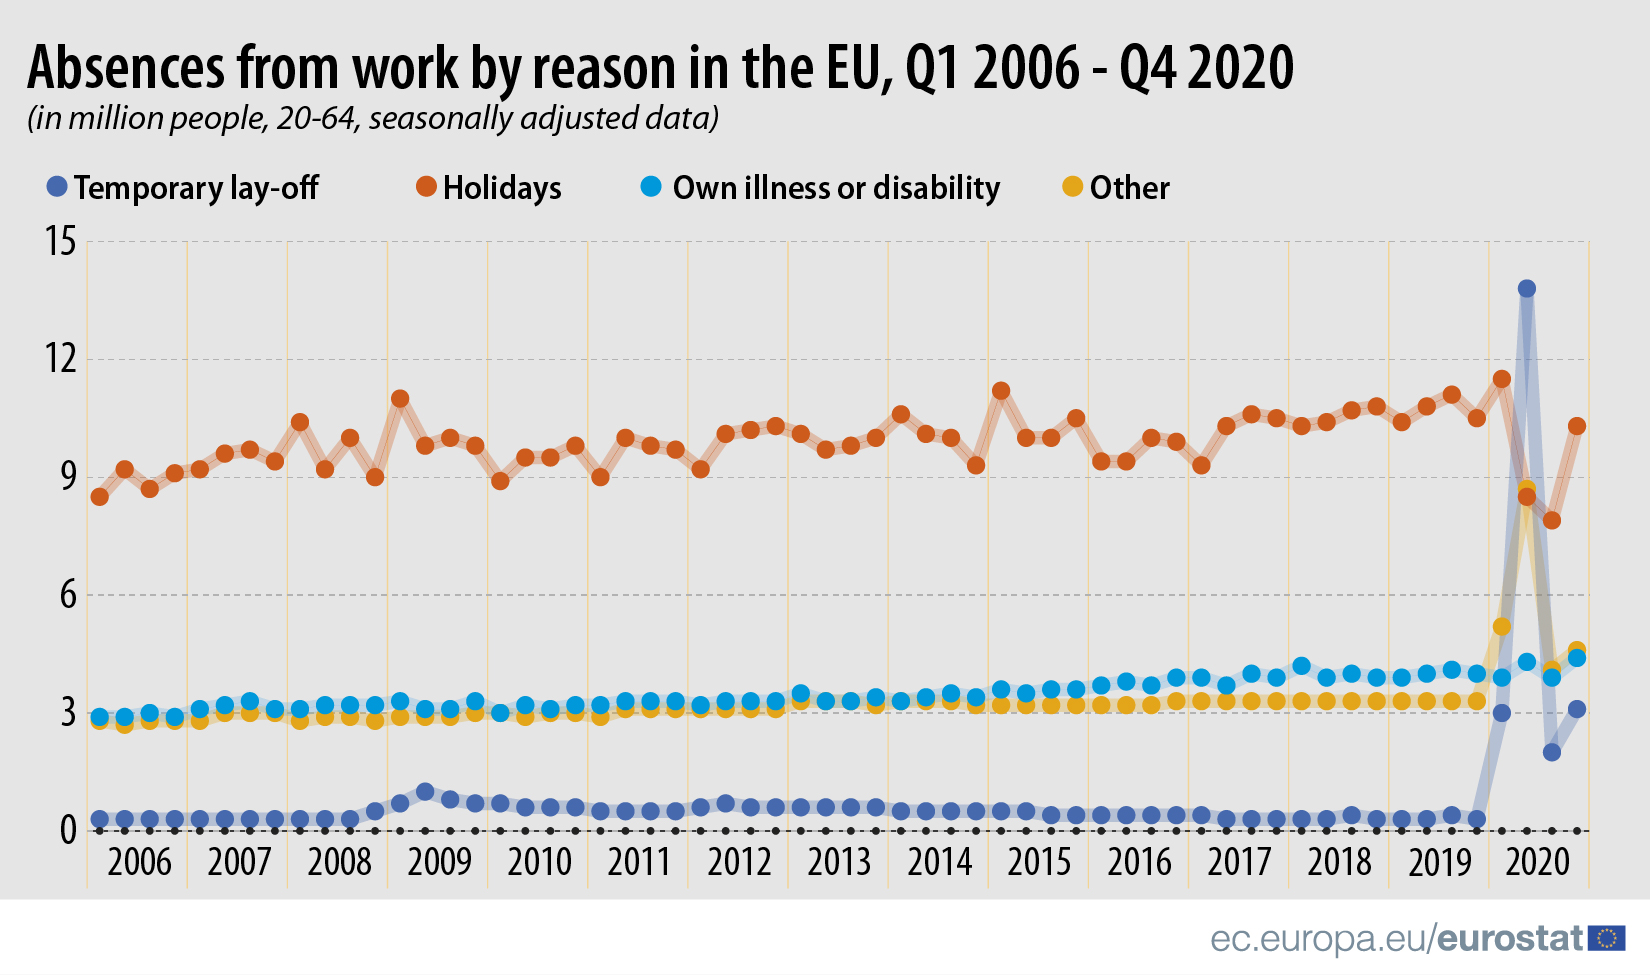 Absences from work in the EU, Q1 2006 - Q4 2020